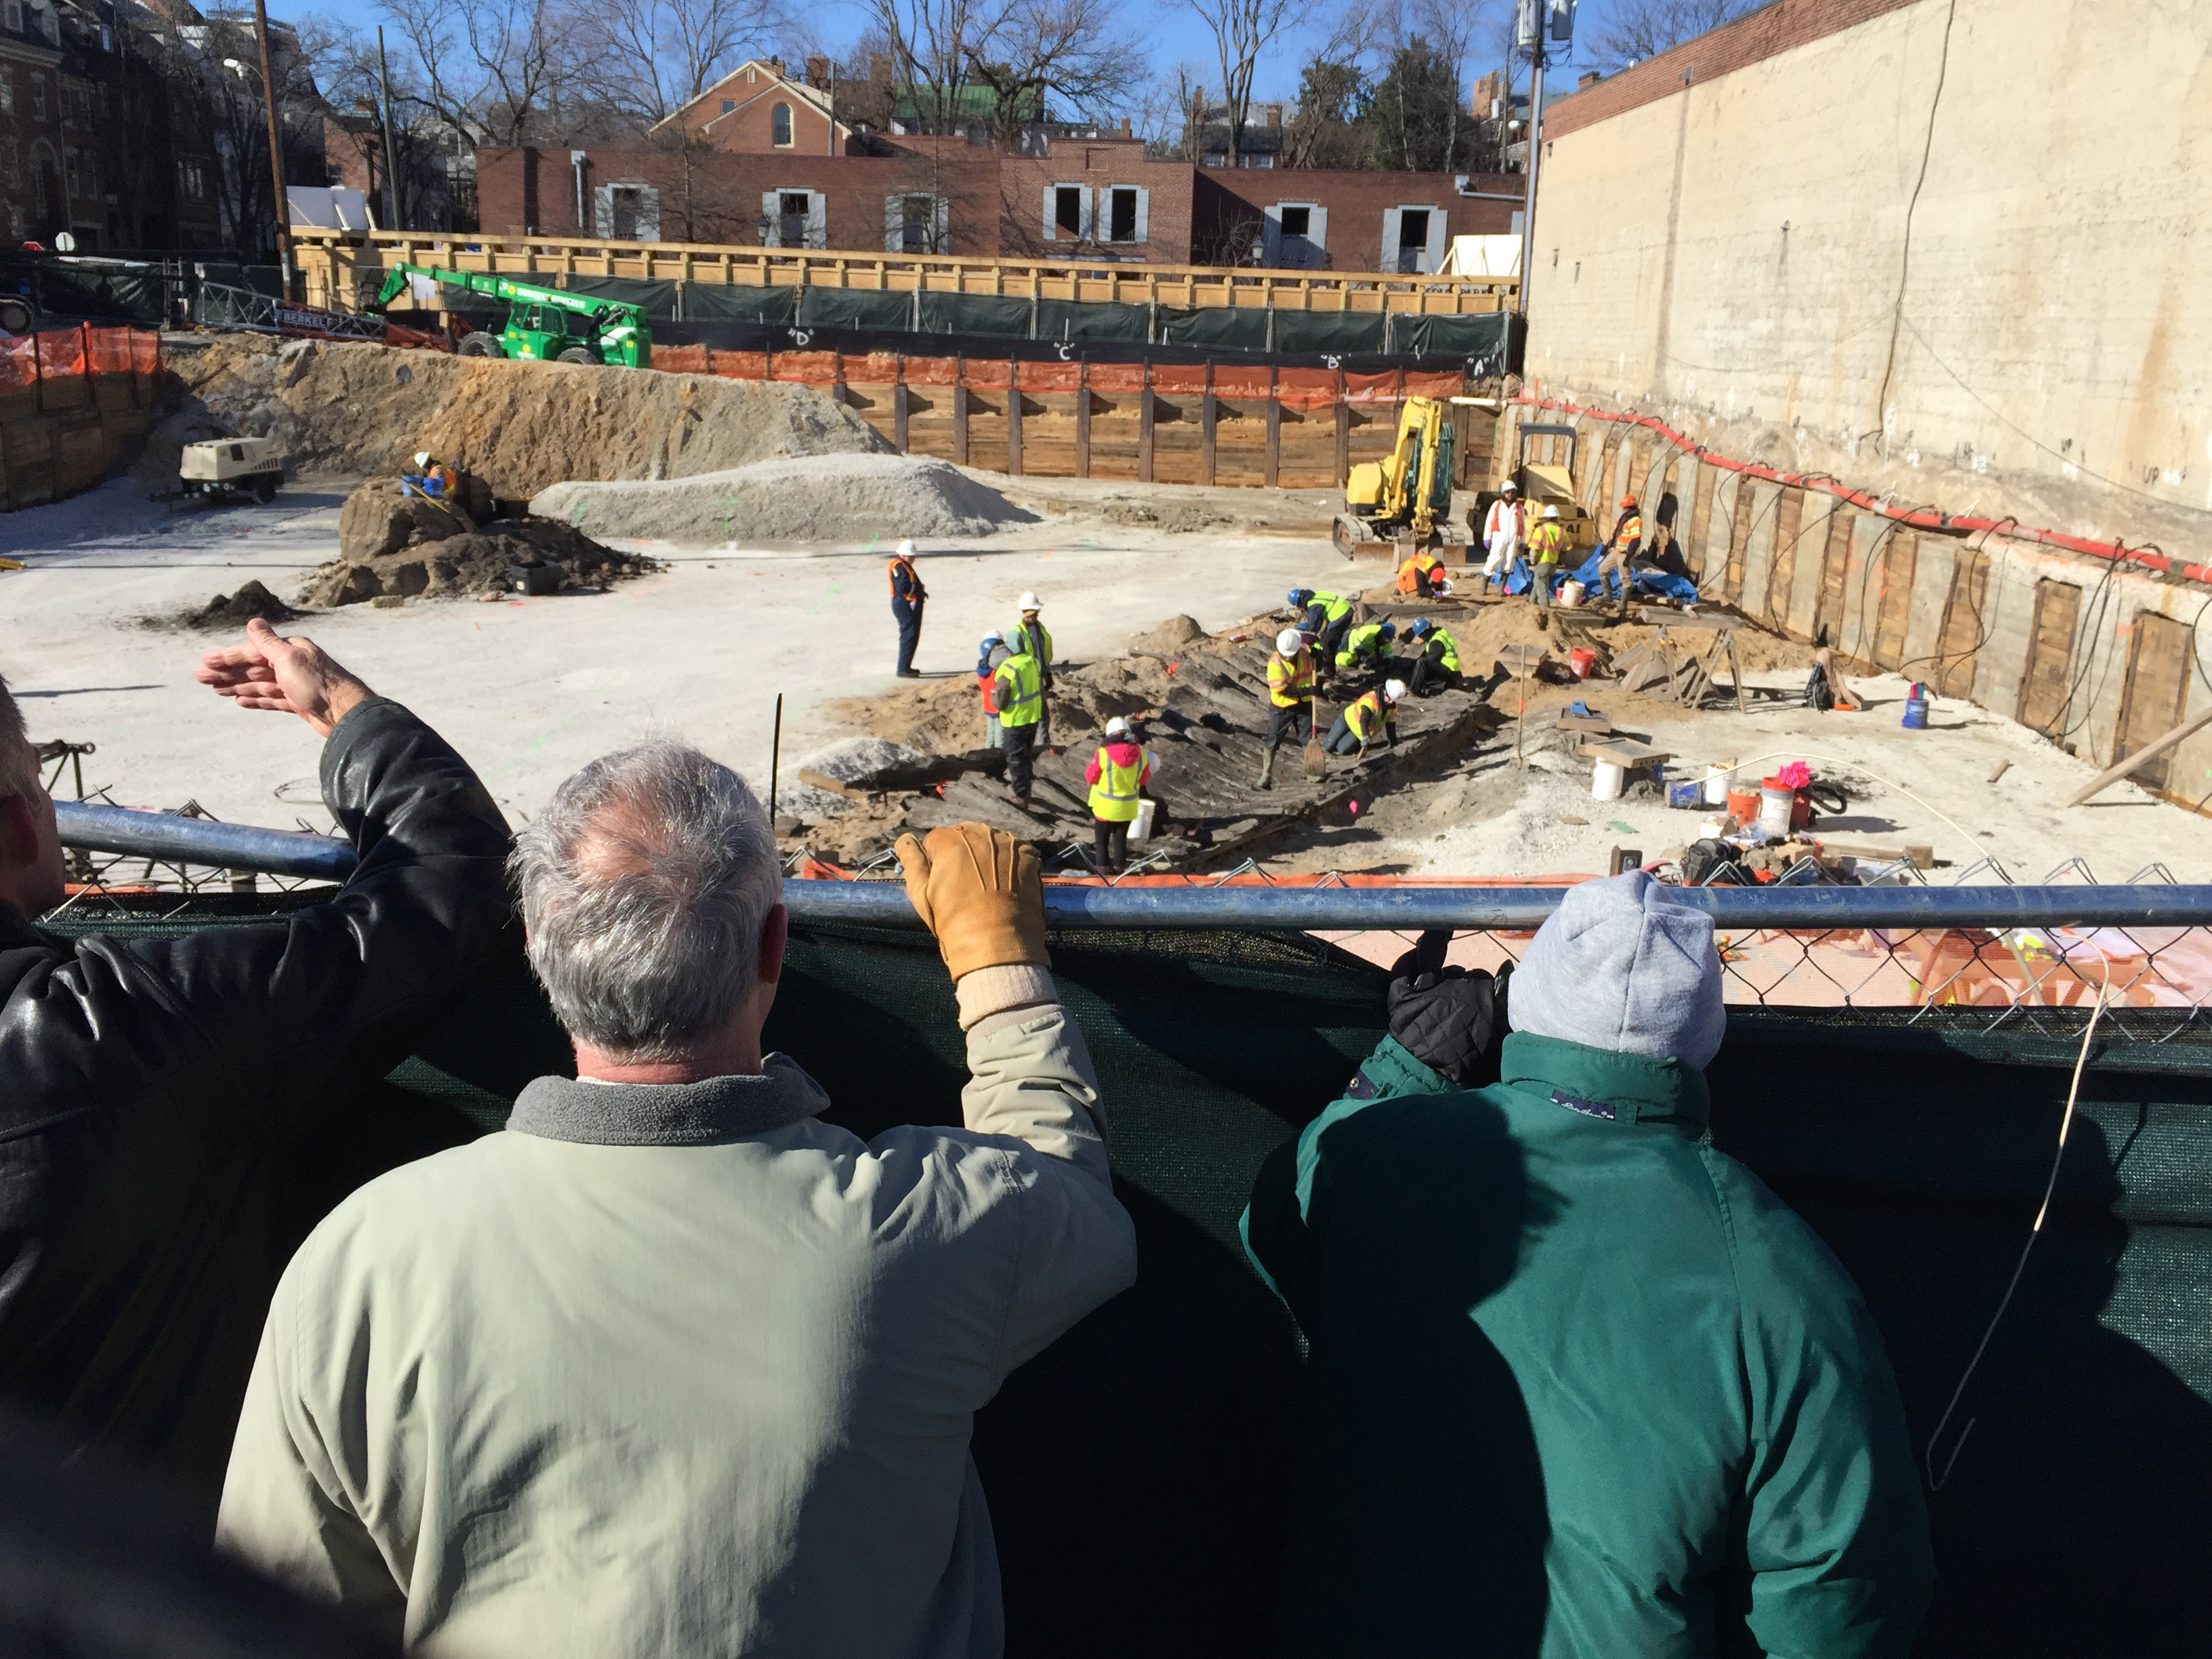 Remnants of 18th-century ship uncovered in Old Town Alexandria